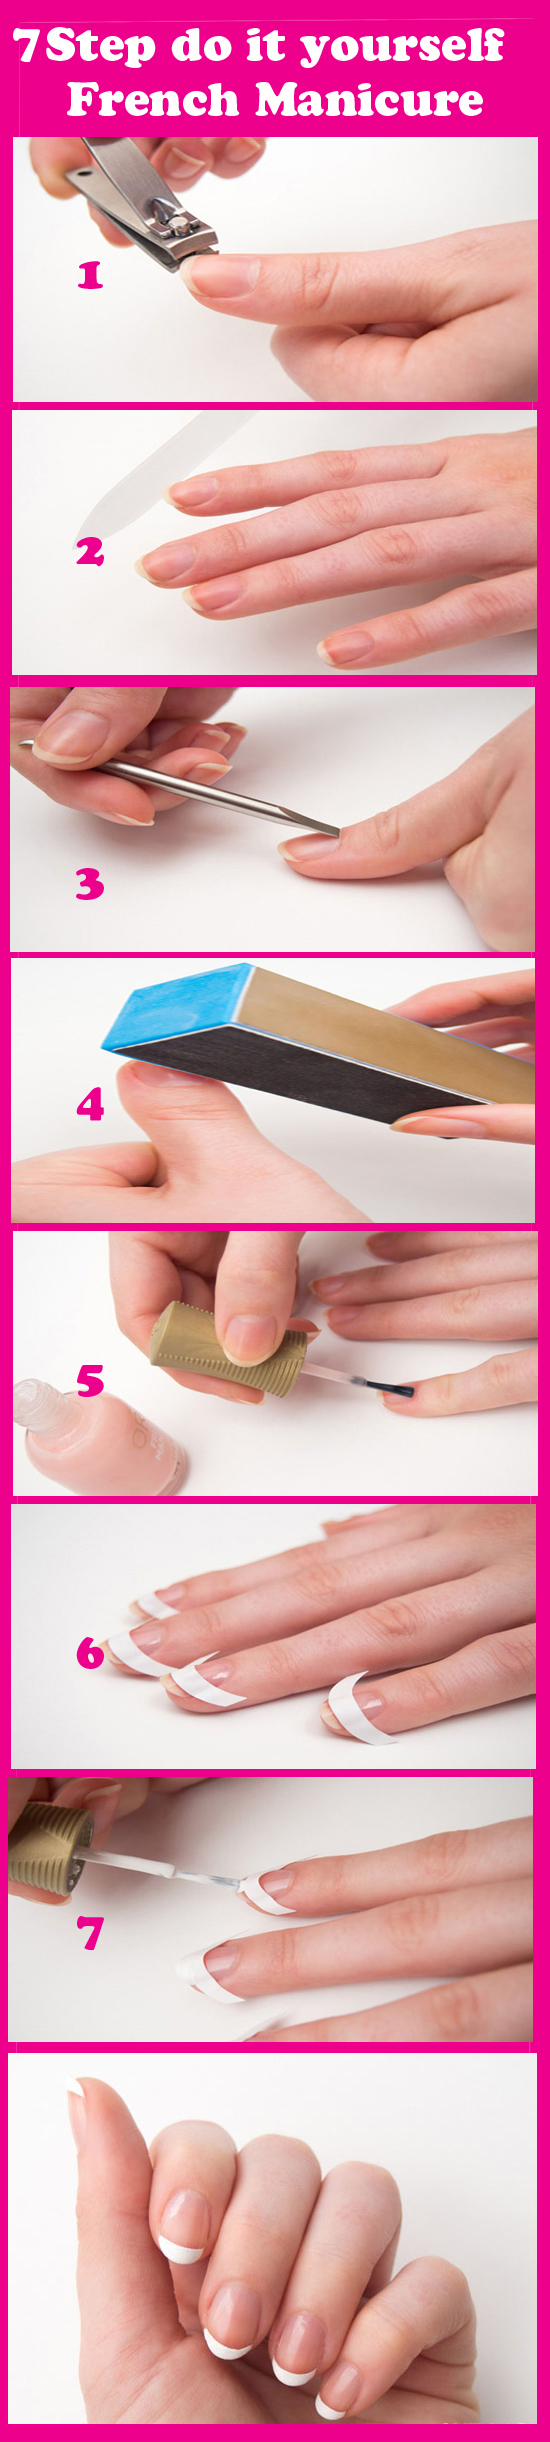 7 step do it yourself french manicure easy french manicure nail 7 step do it yourself french manicure easy solutioingenieria Images